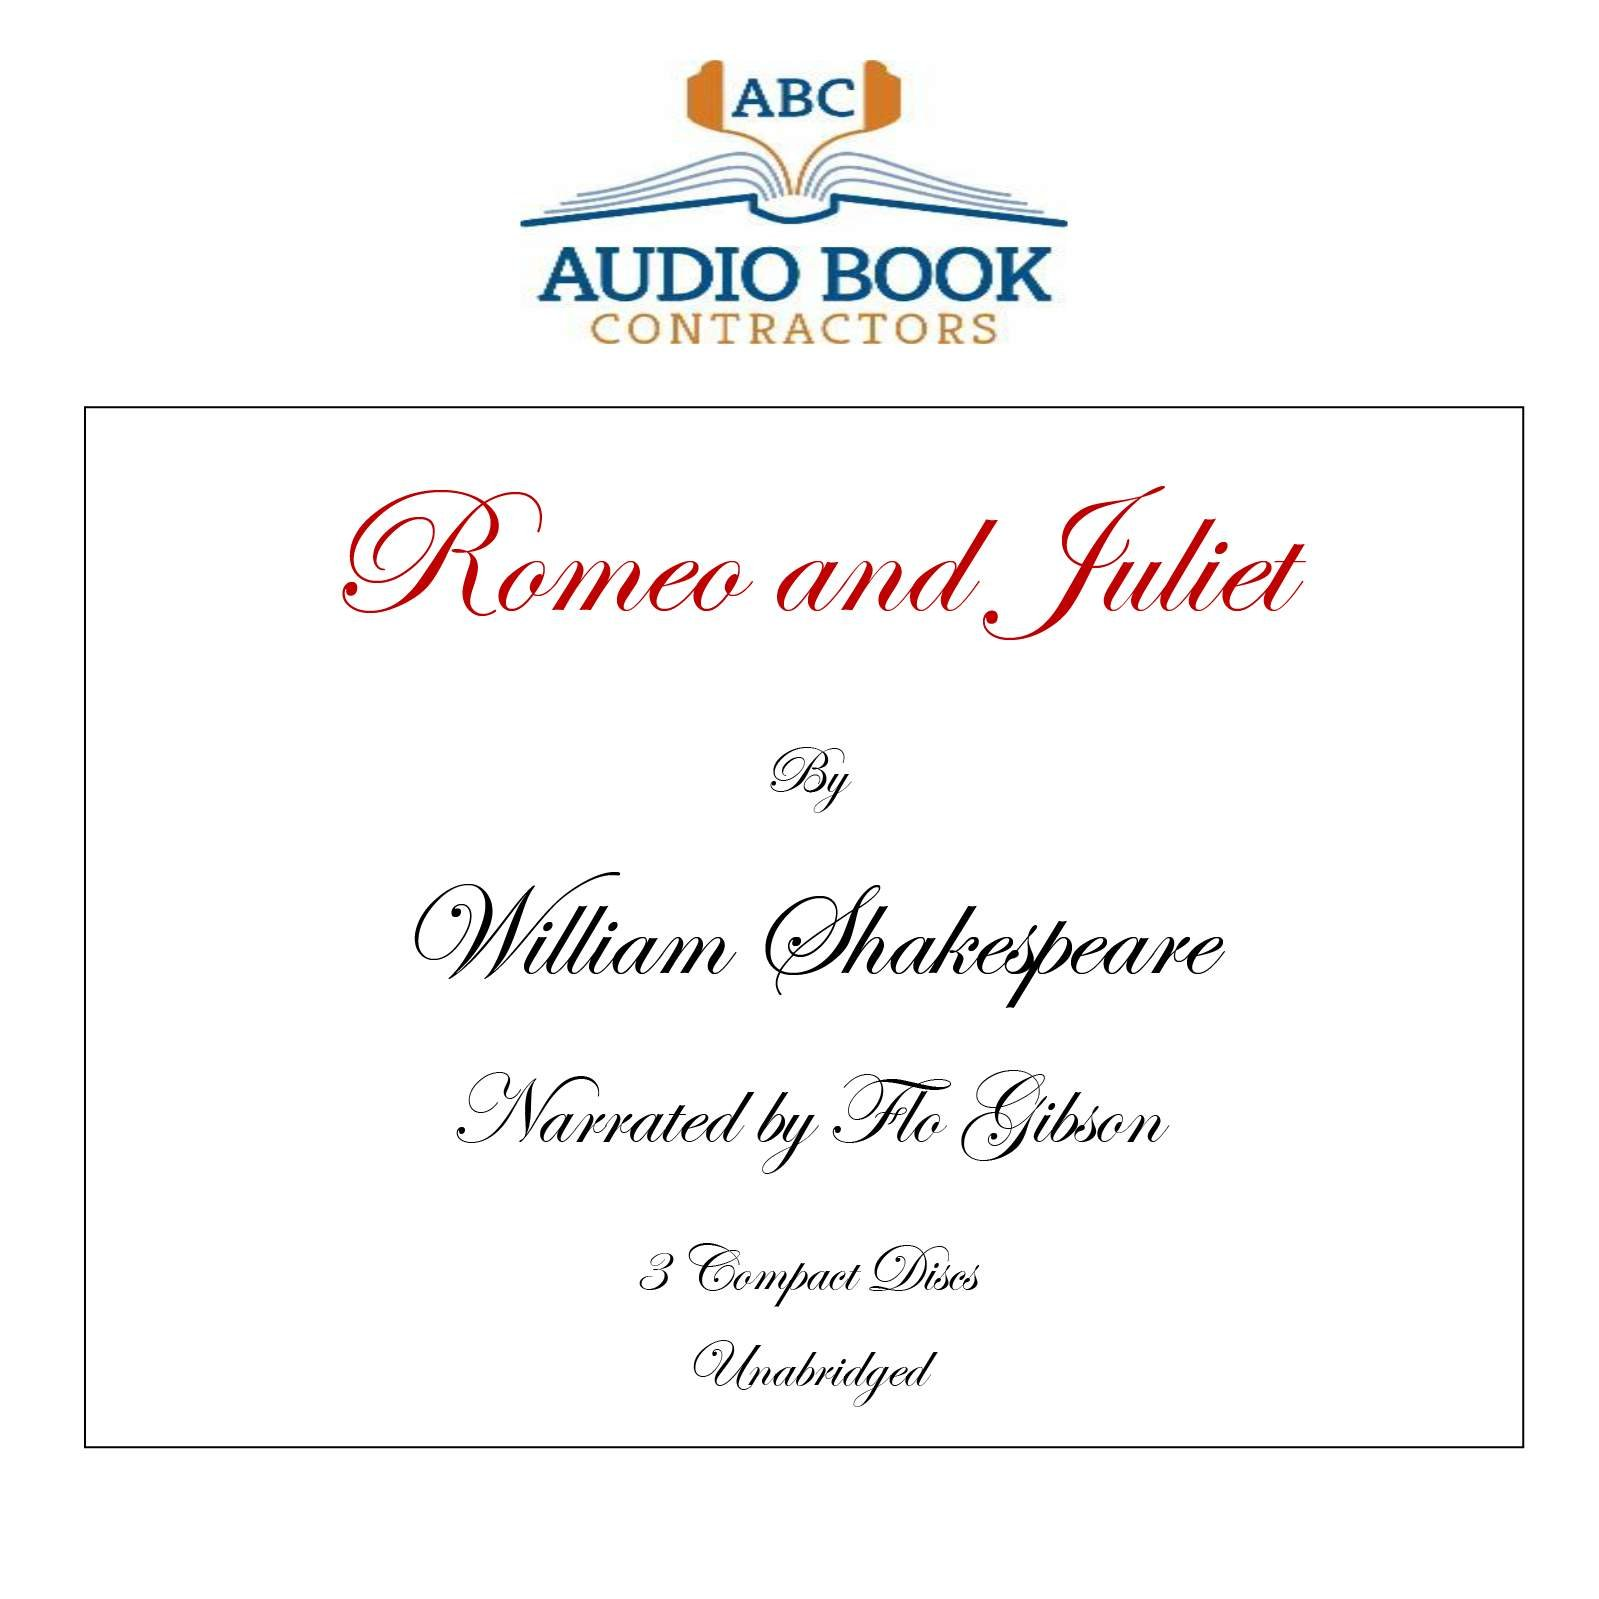 Romeo and Juliet (Classic Books on CD Collection) [UNABRIDGED]